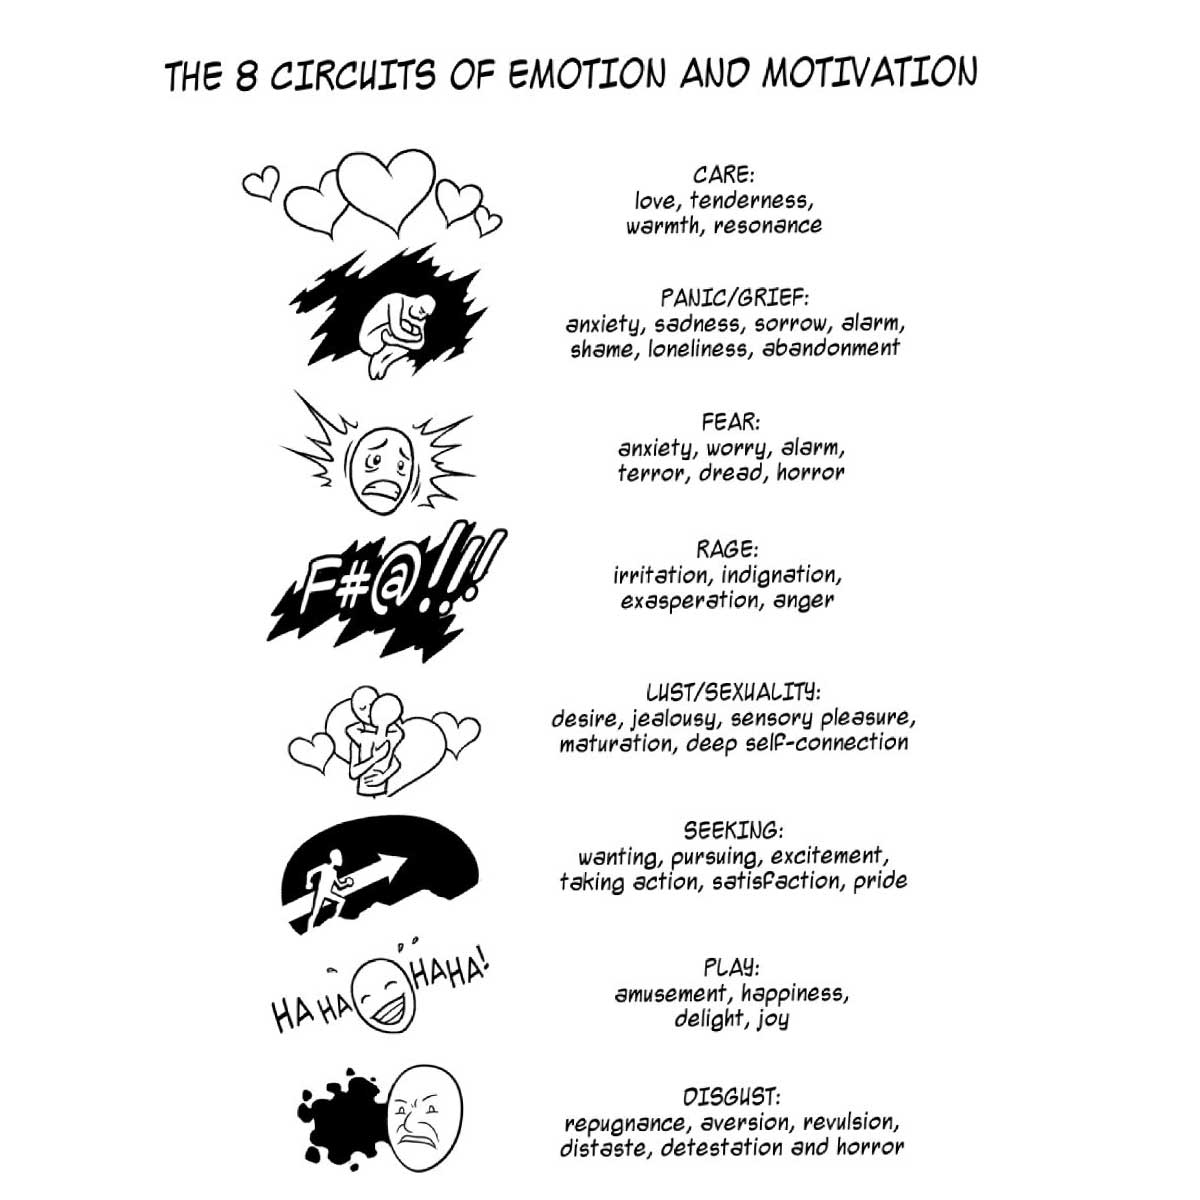 illustration showing the 8 circuits of emotion and motivation